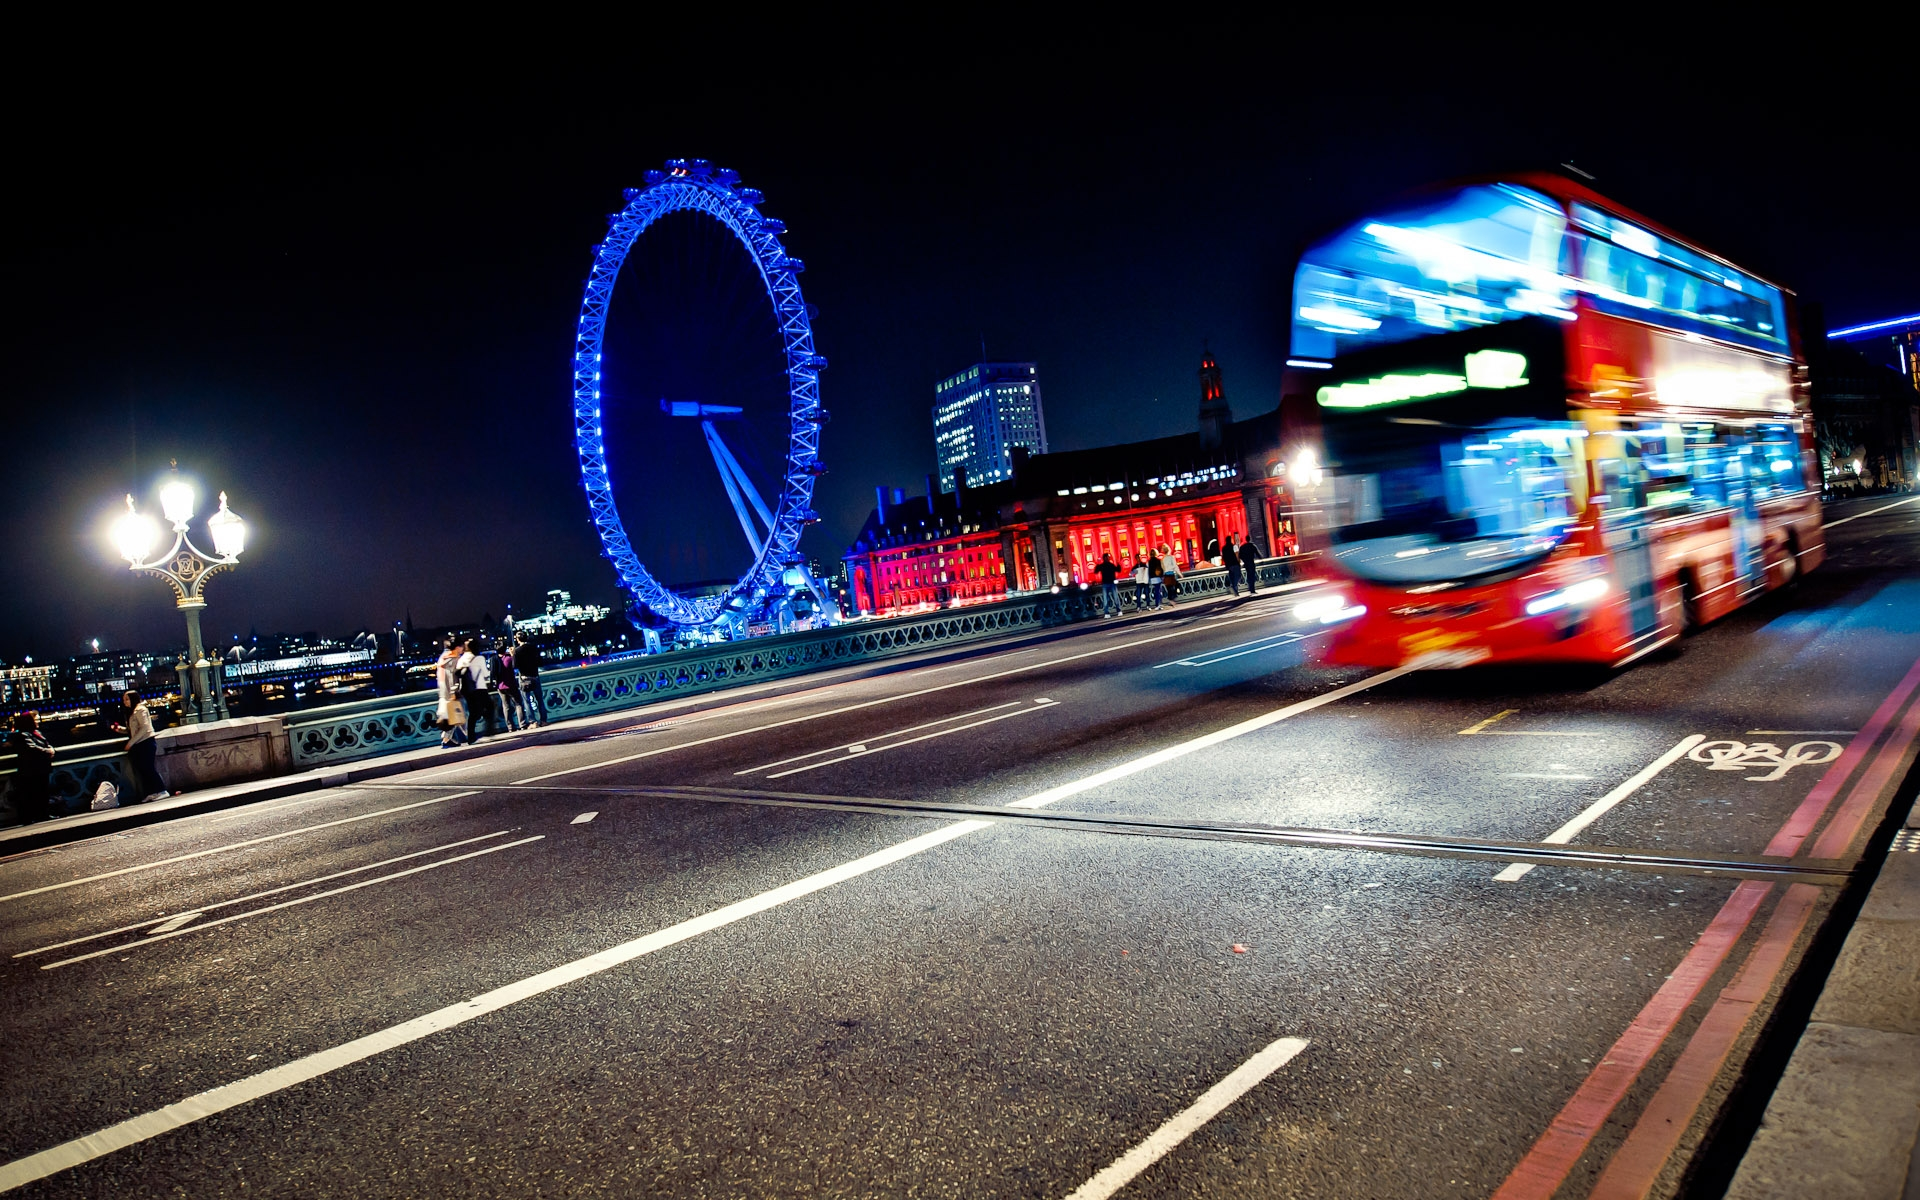 london red bus and london eye at night across Westminster bridge